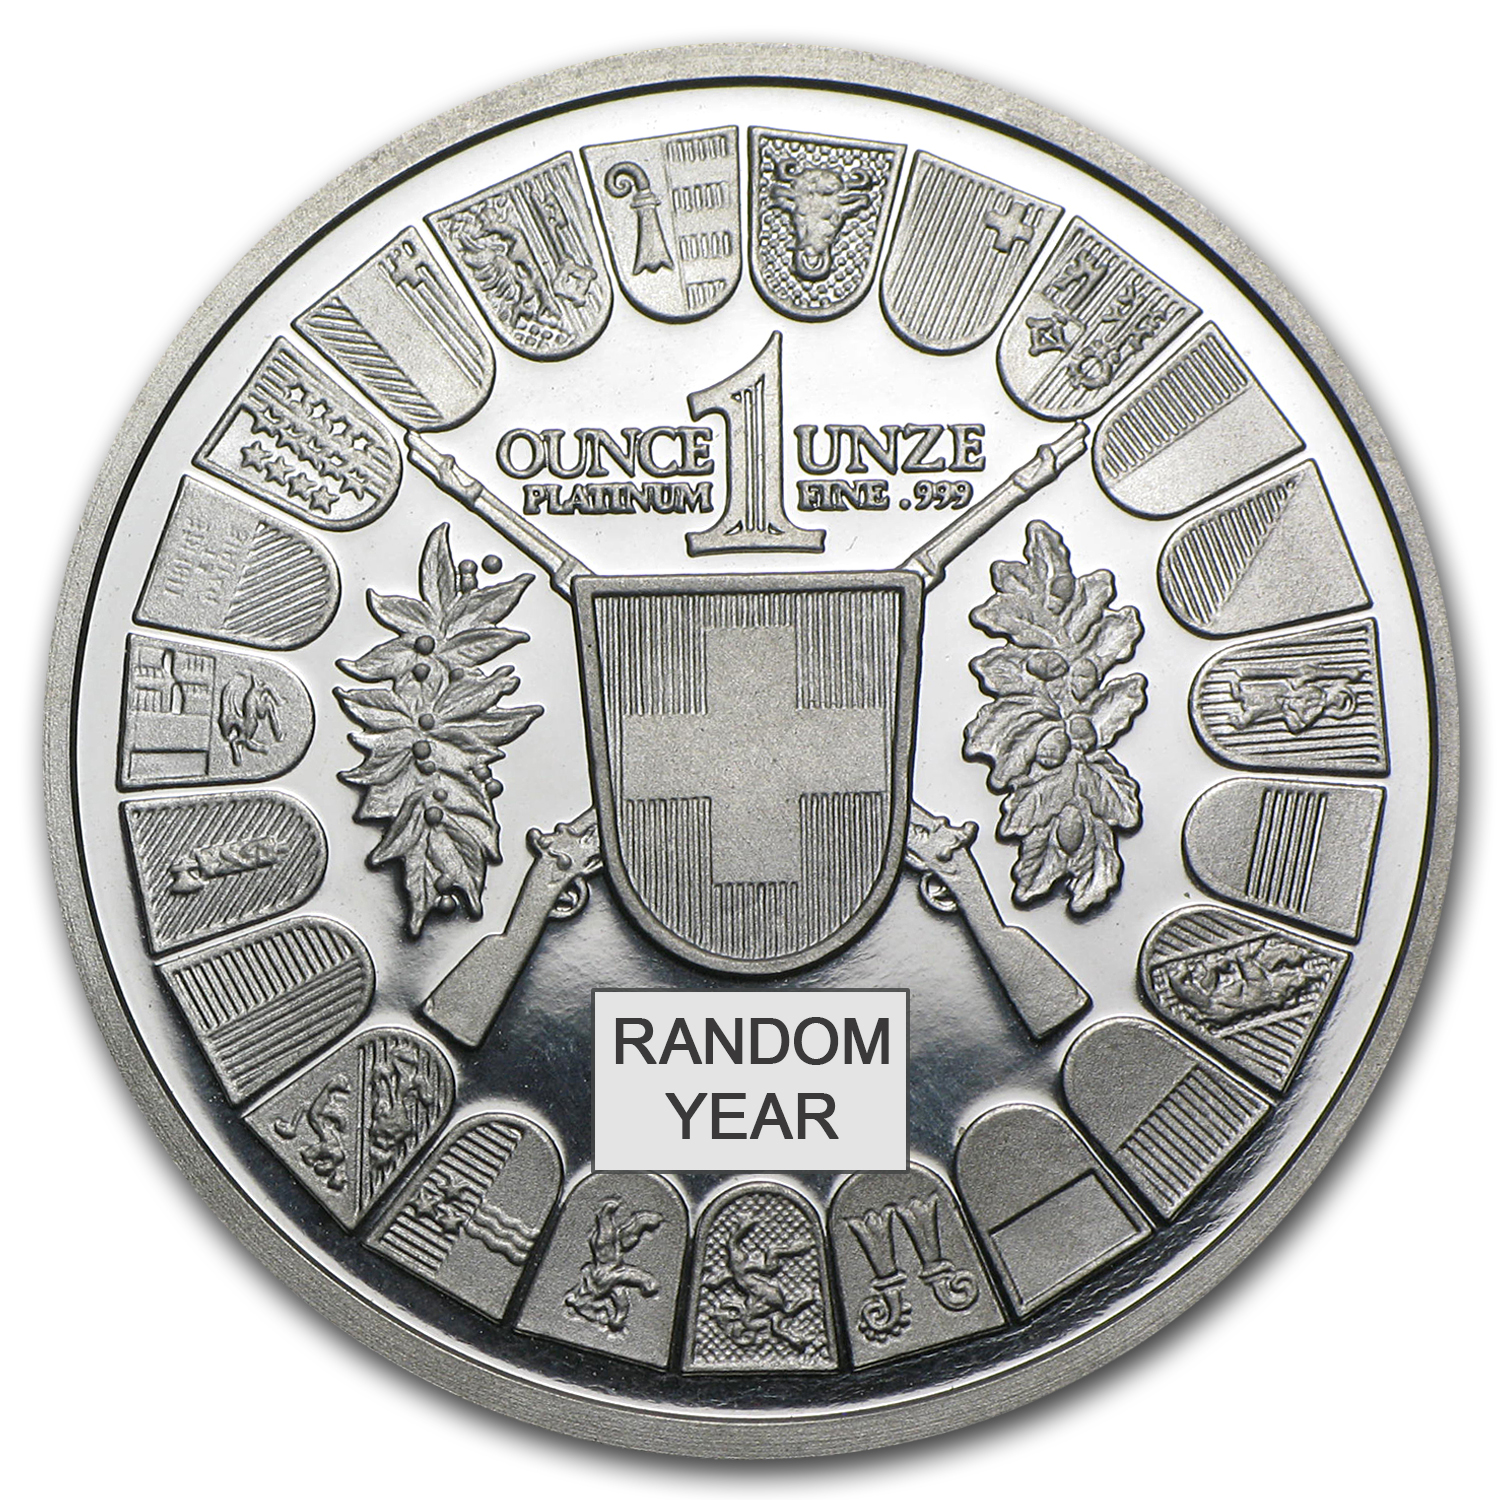 1 oz Swiss Platinum Shooting Thaler Proof